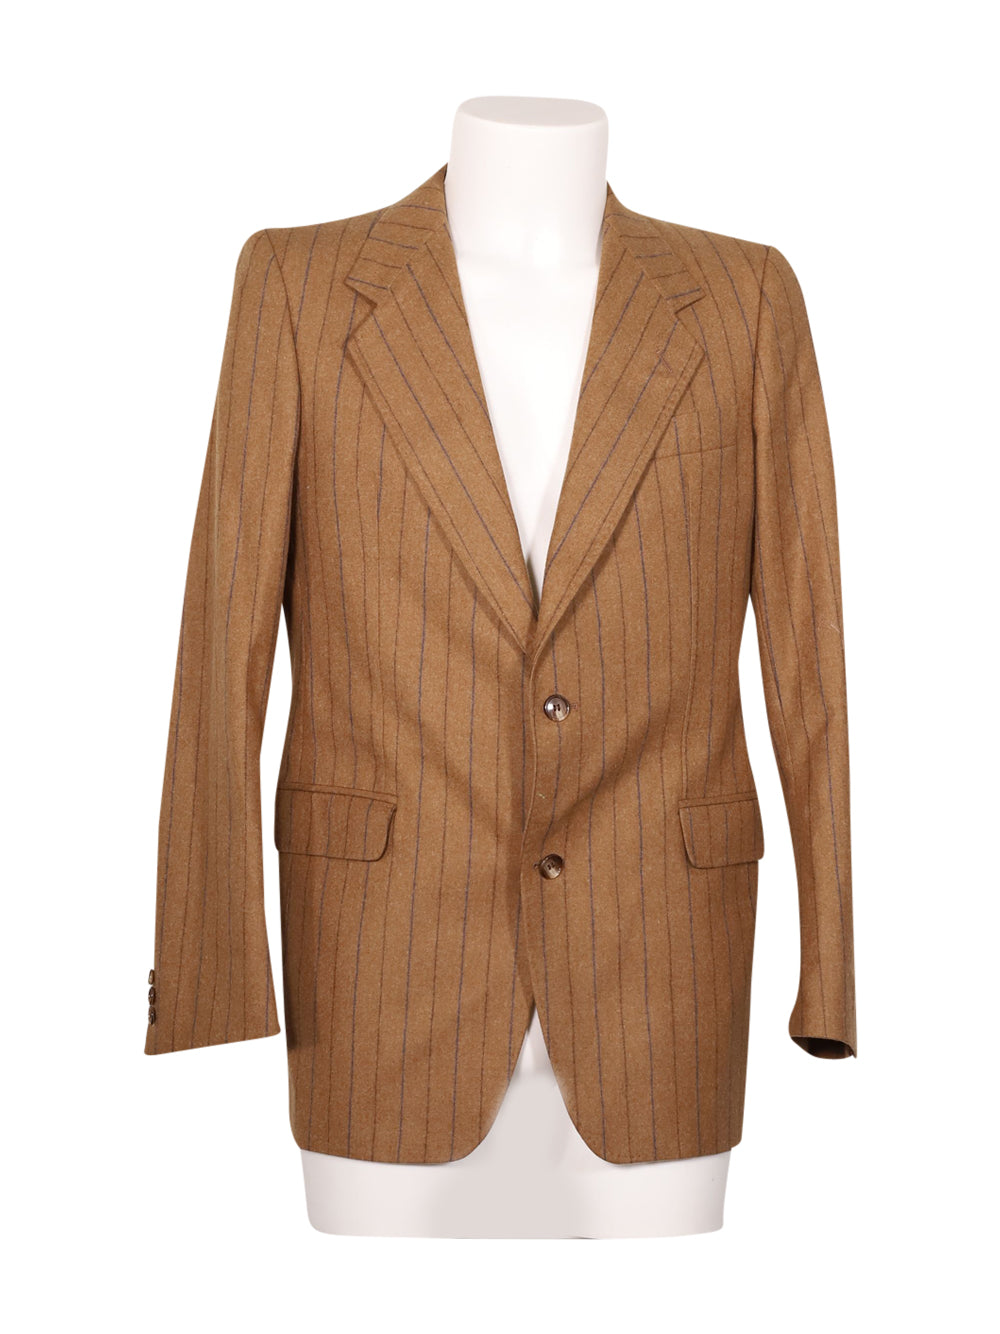 Front photo of Preloved Cerruti 1881 Brown Man's blazer - size 40/L